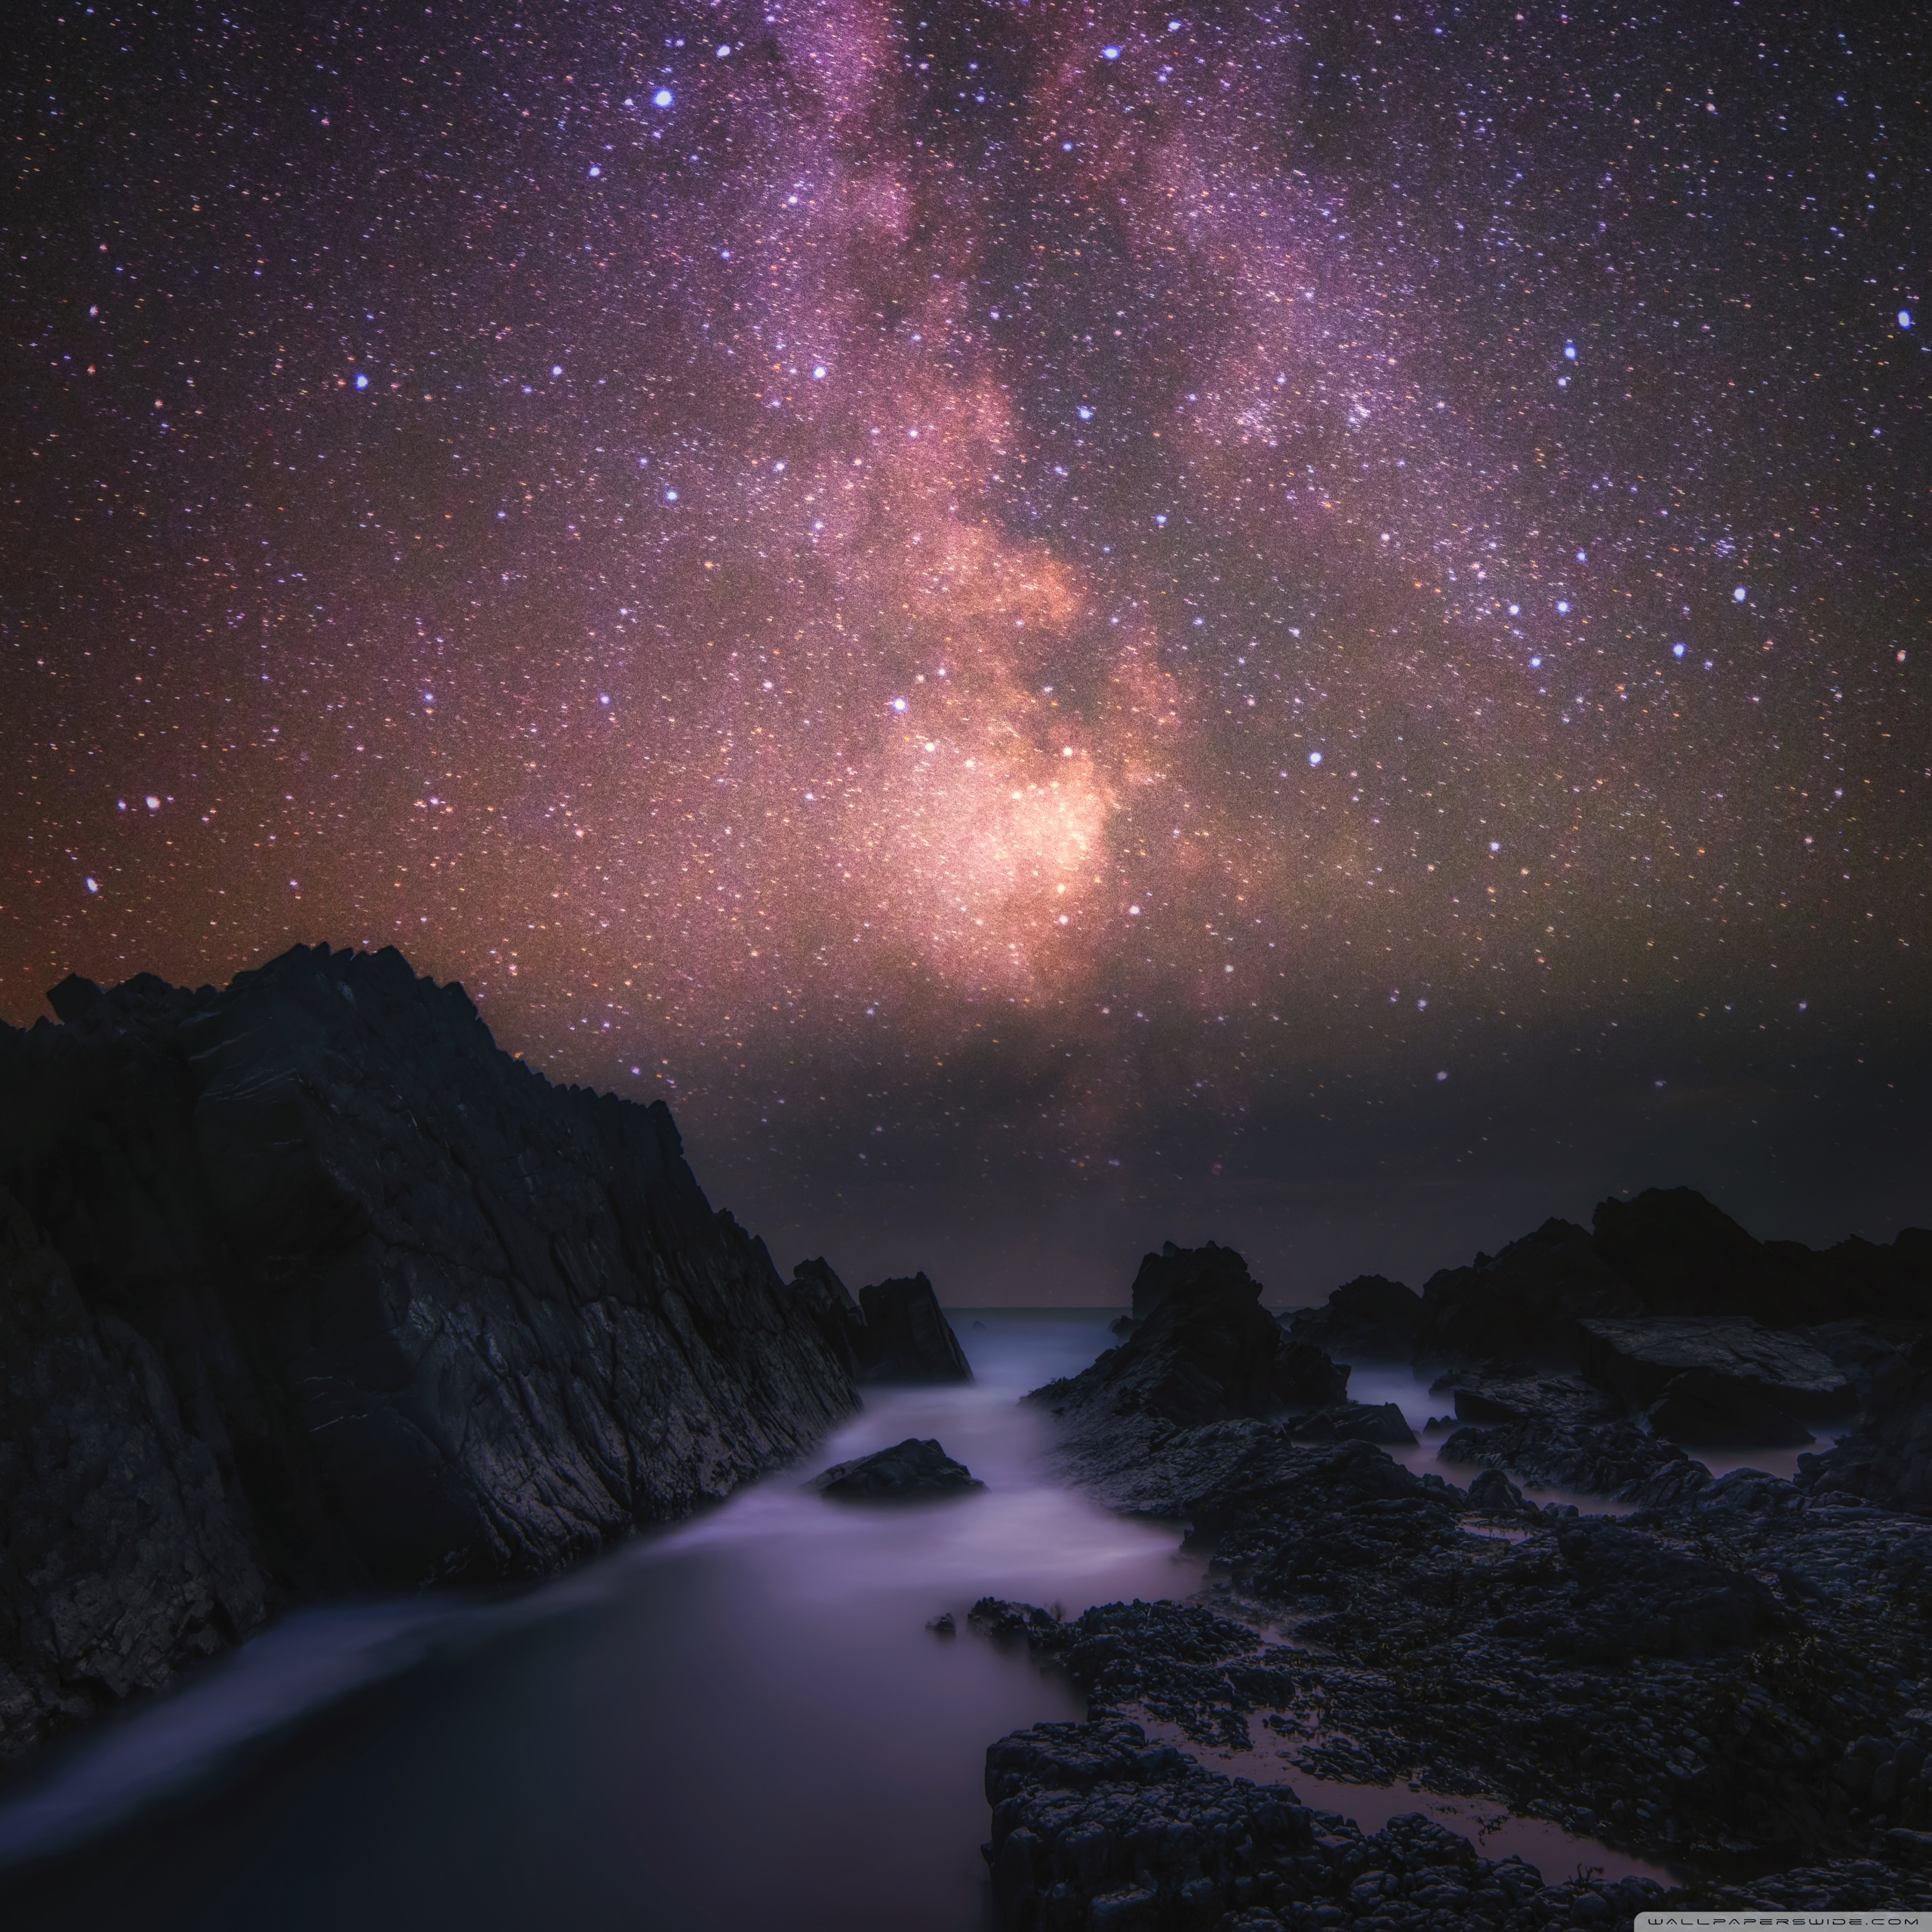 Milky Way Tab S6 2560x2560 Wallpaper Teahub Io